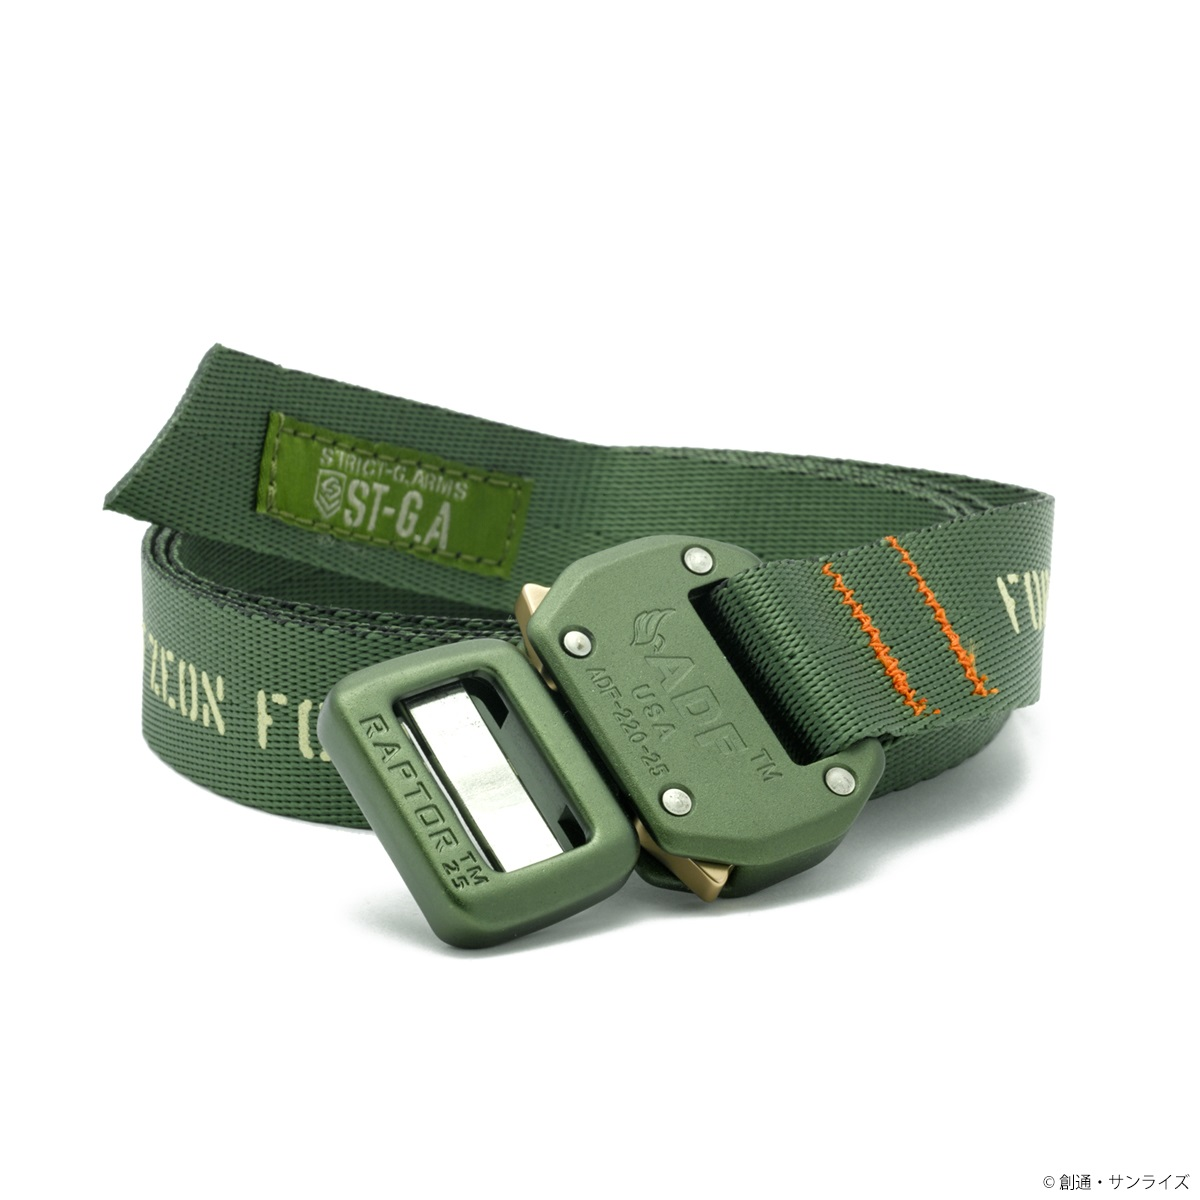 STRICT-G.ARMS M.I.S.『機動戦士ガンダム』TACTICAL BELT  ZEON FORCES